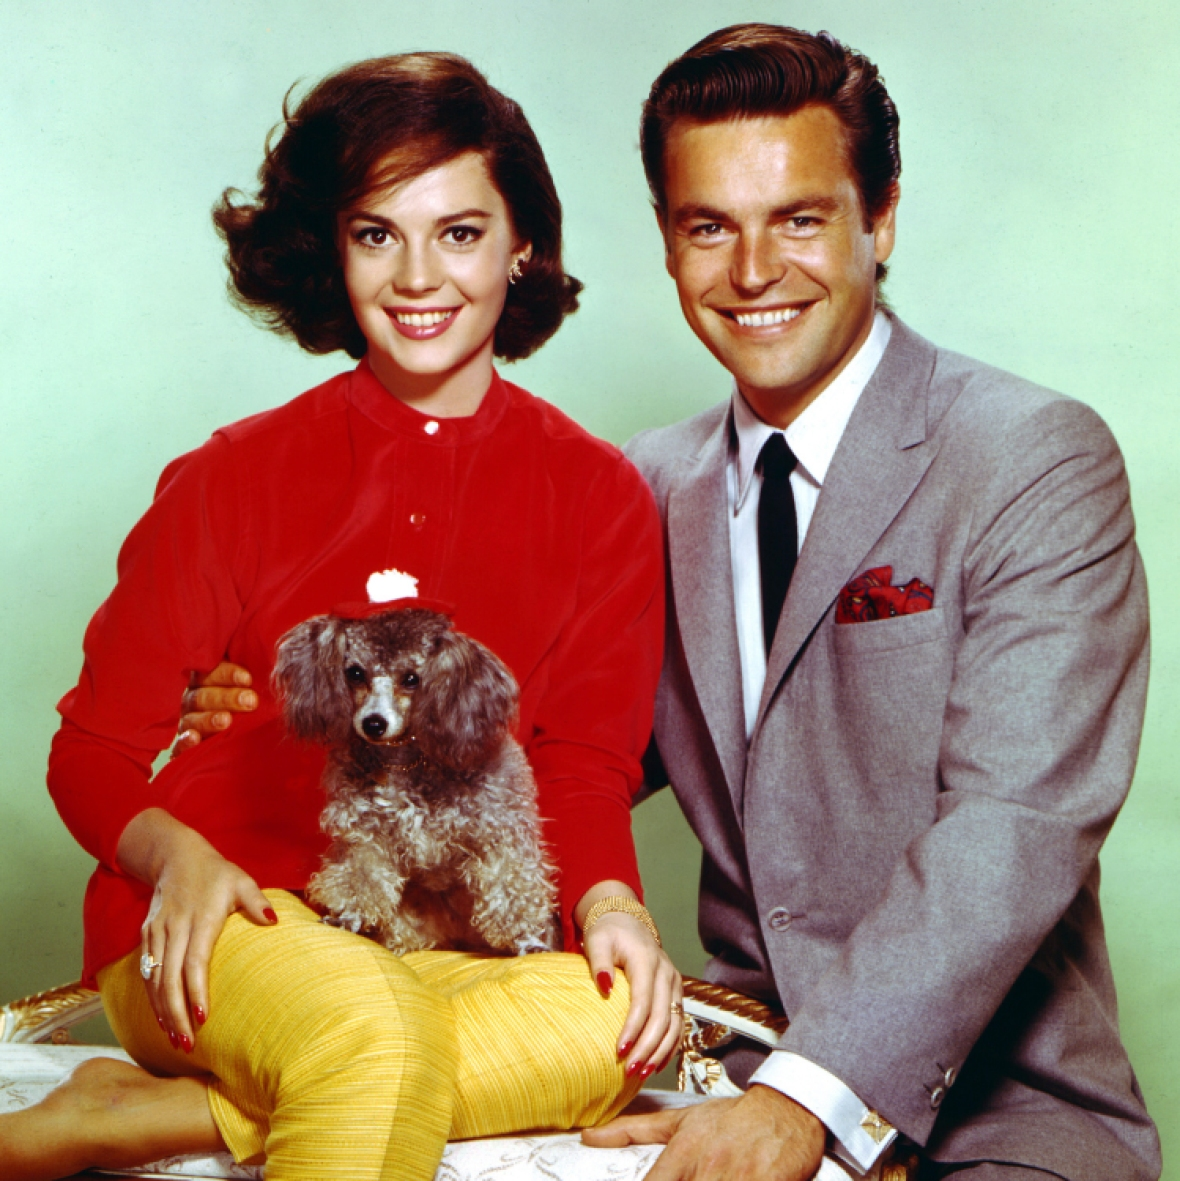 natalie wood robert wagner getty images